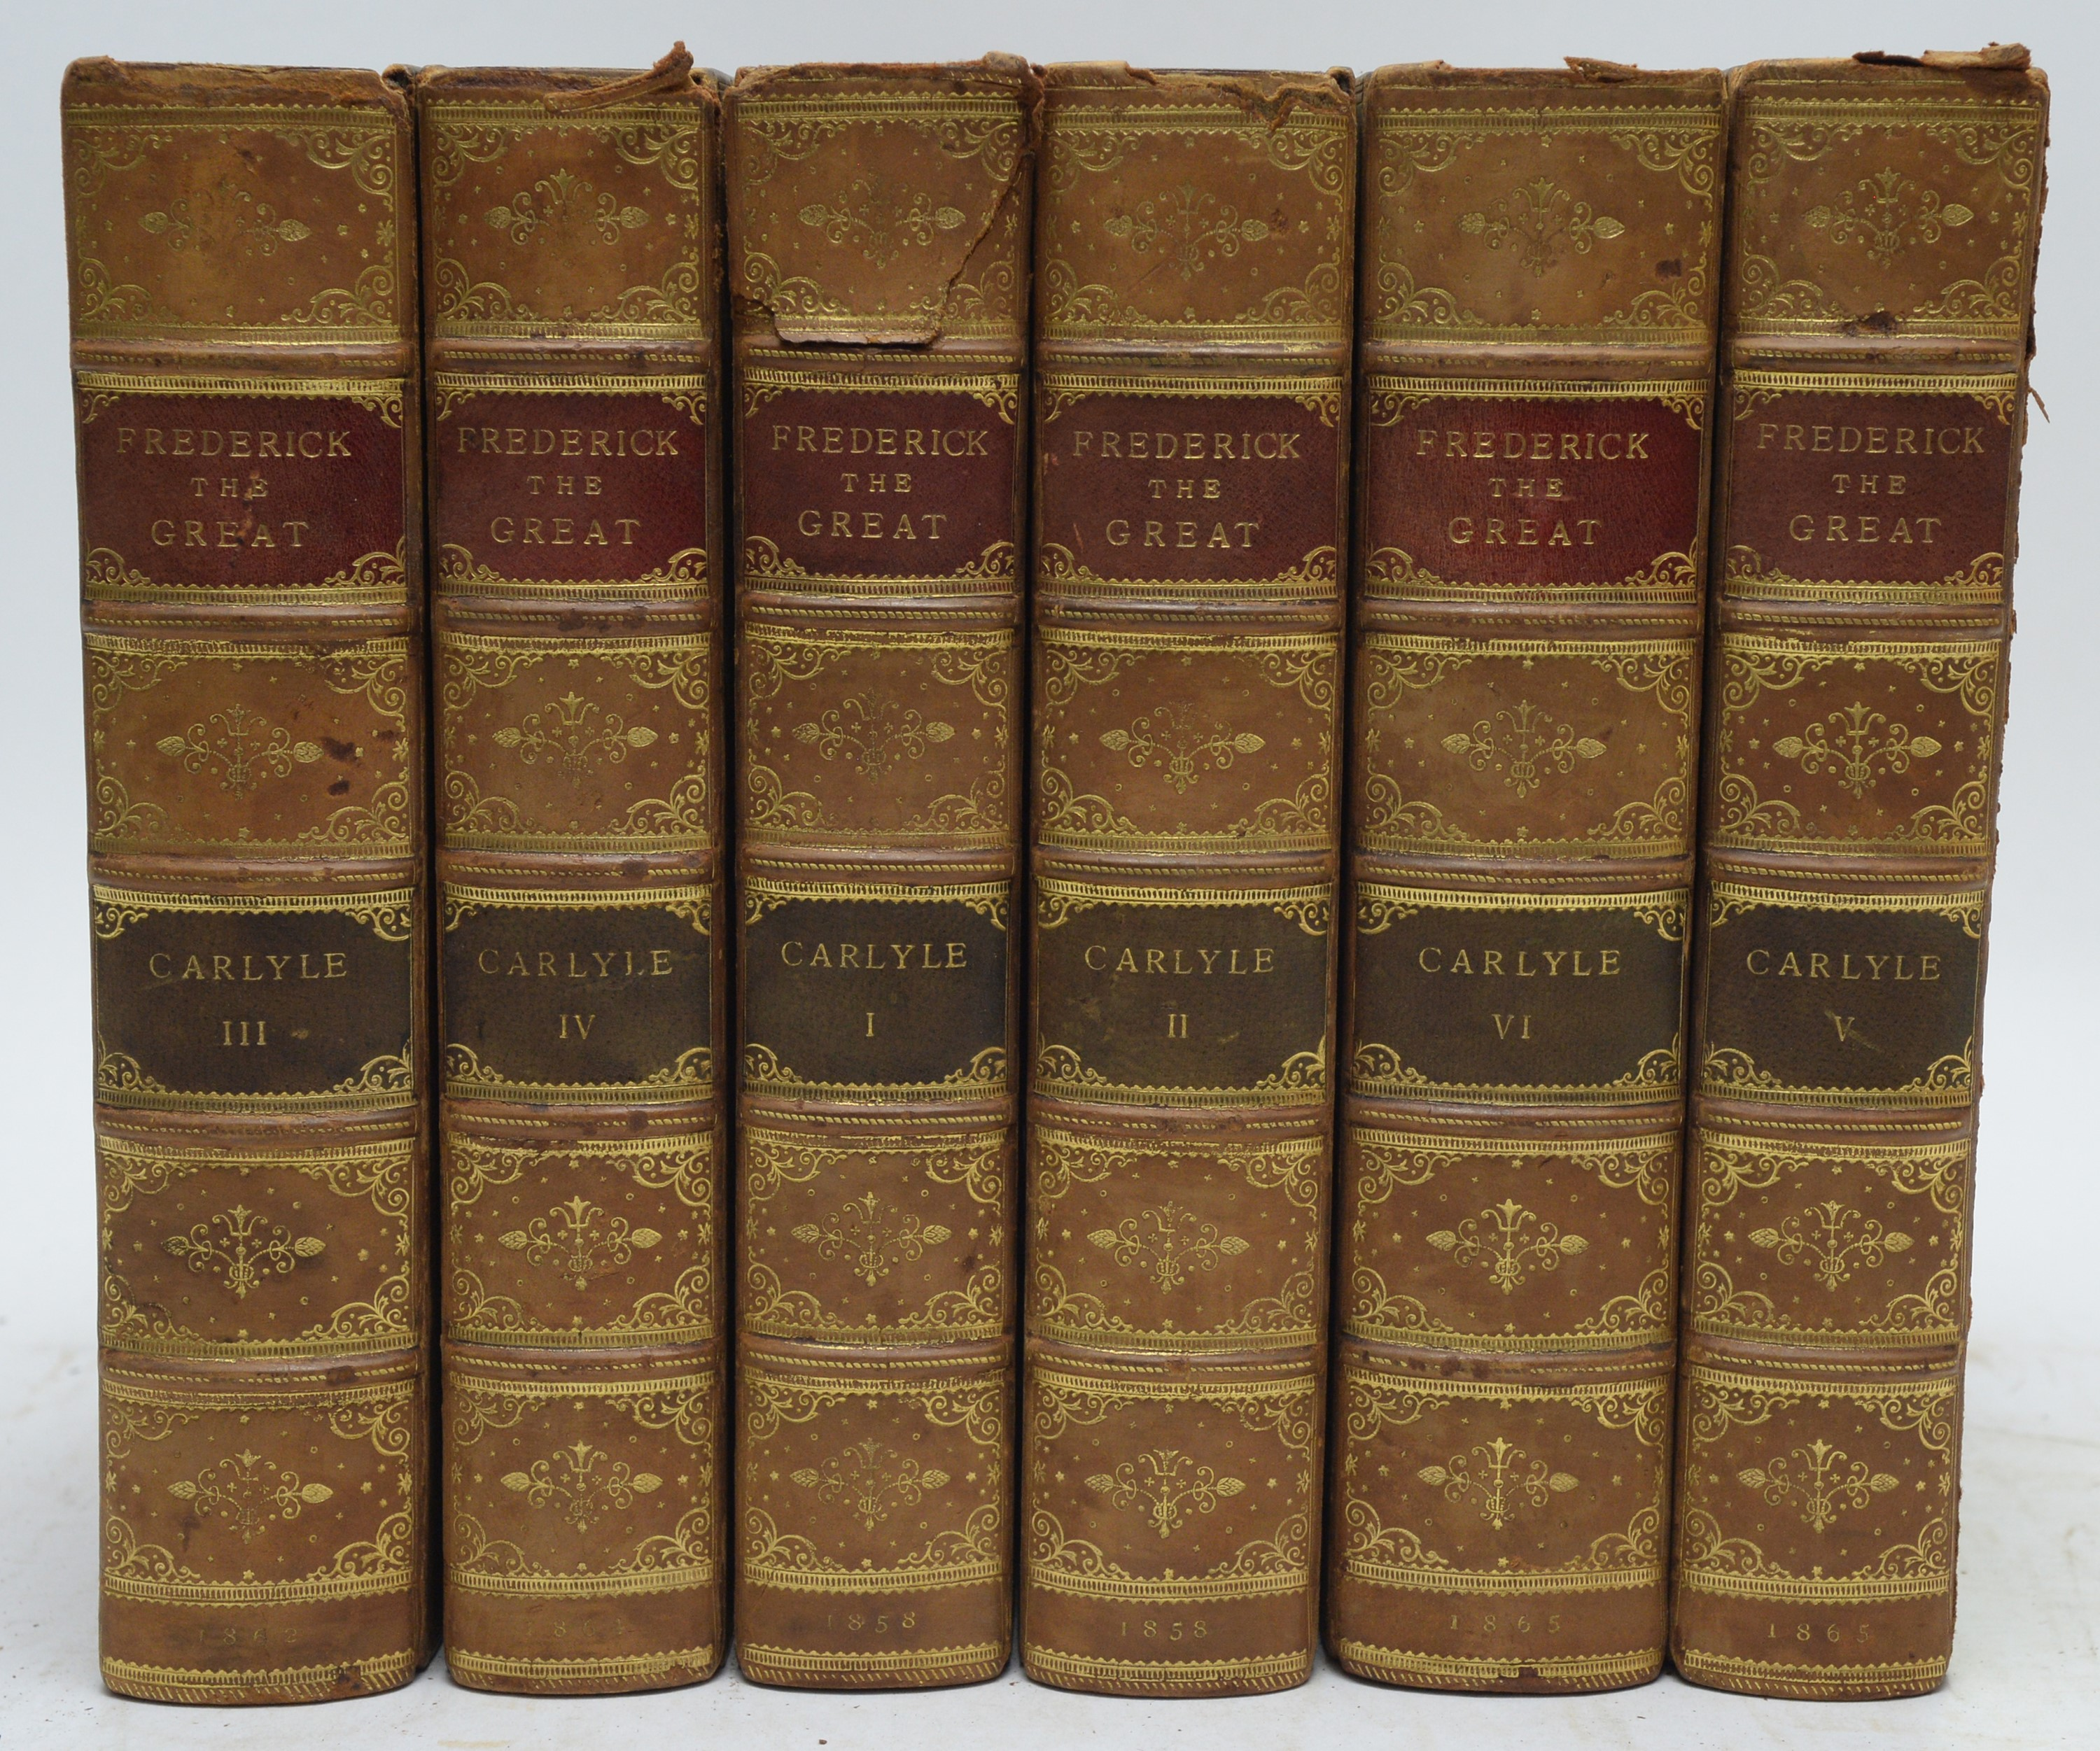 Carlyle (Thomas) History of Frederick The Great of Prussia.